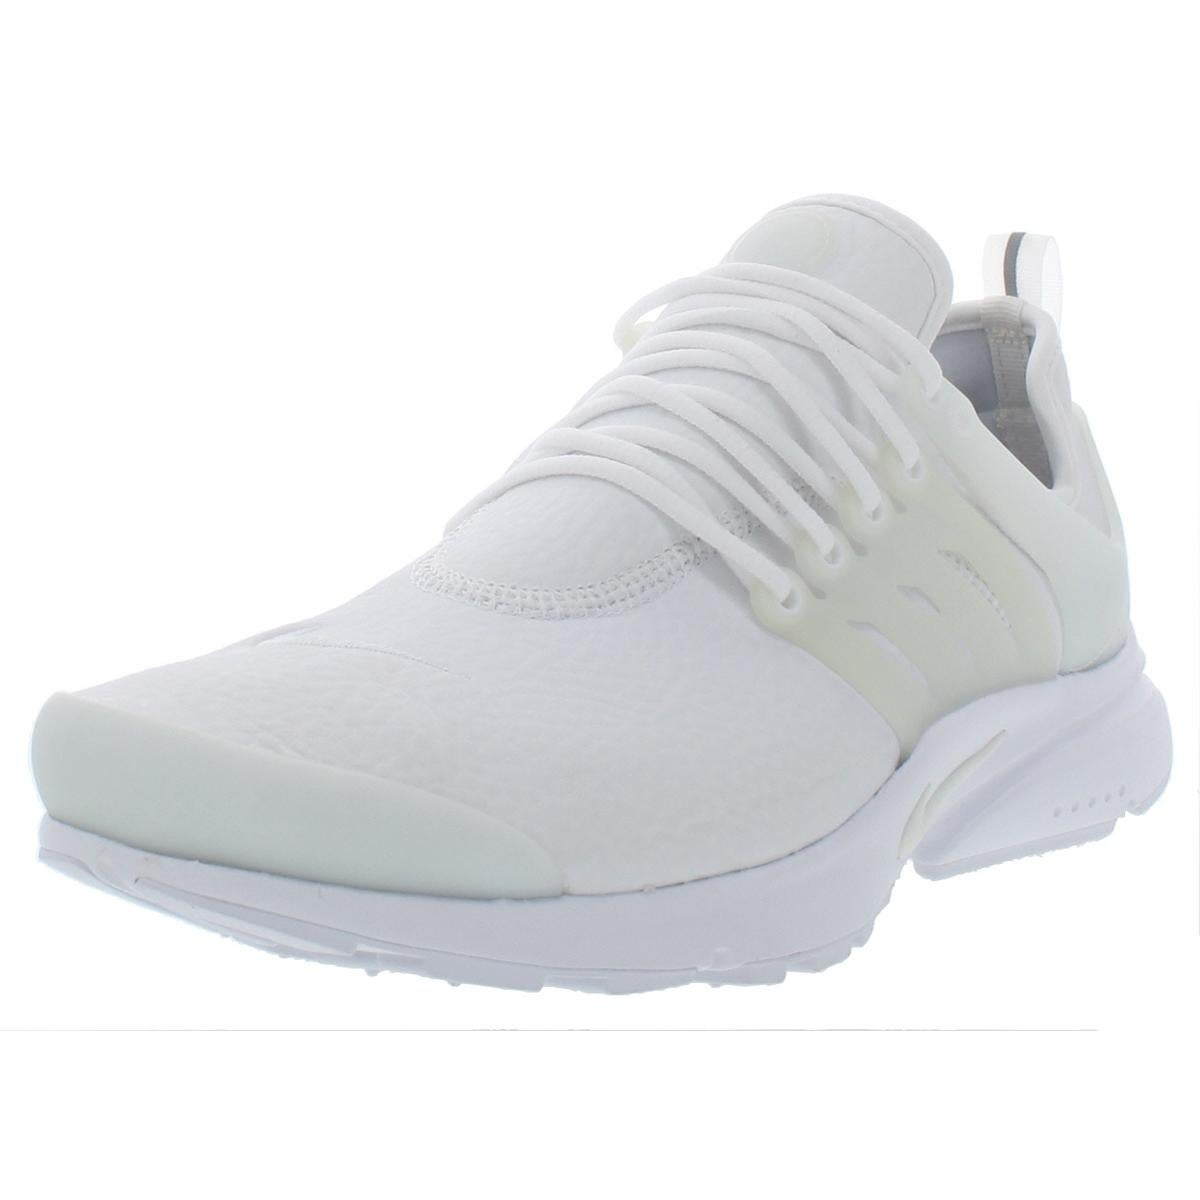 6d74b8468 Shop Nike Womens Air Presto PRM Running Shoes Workout - Free ...